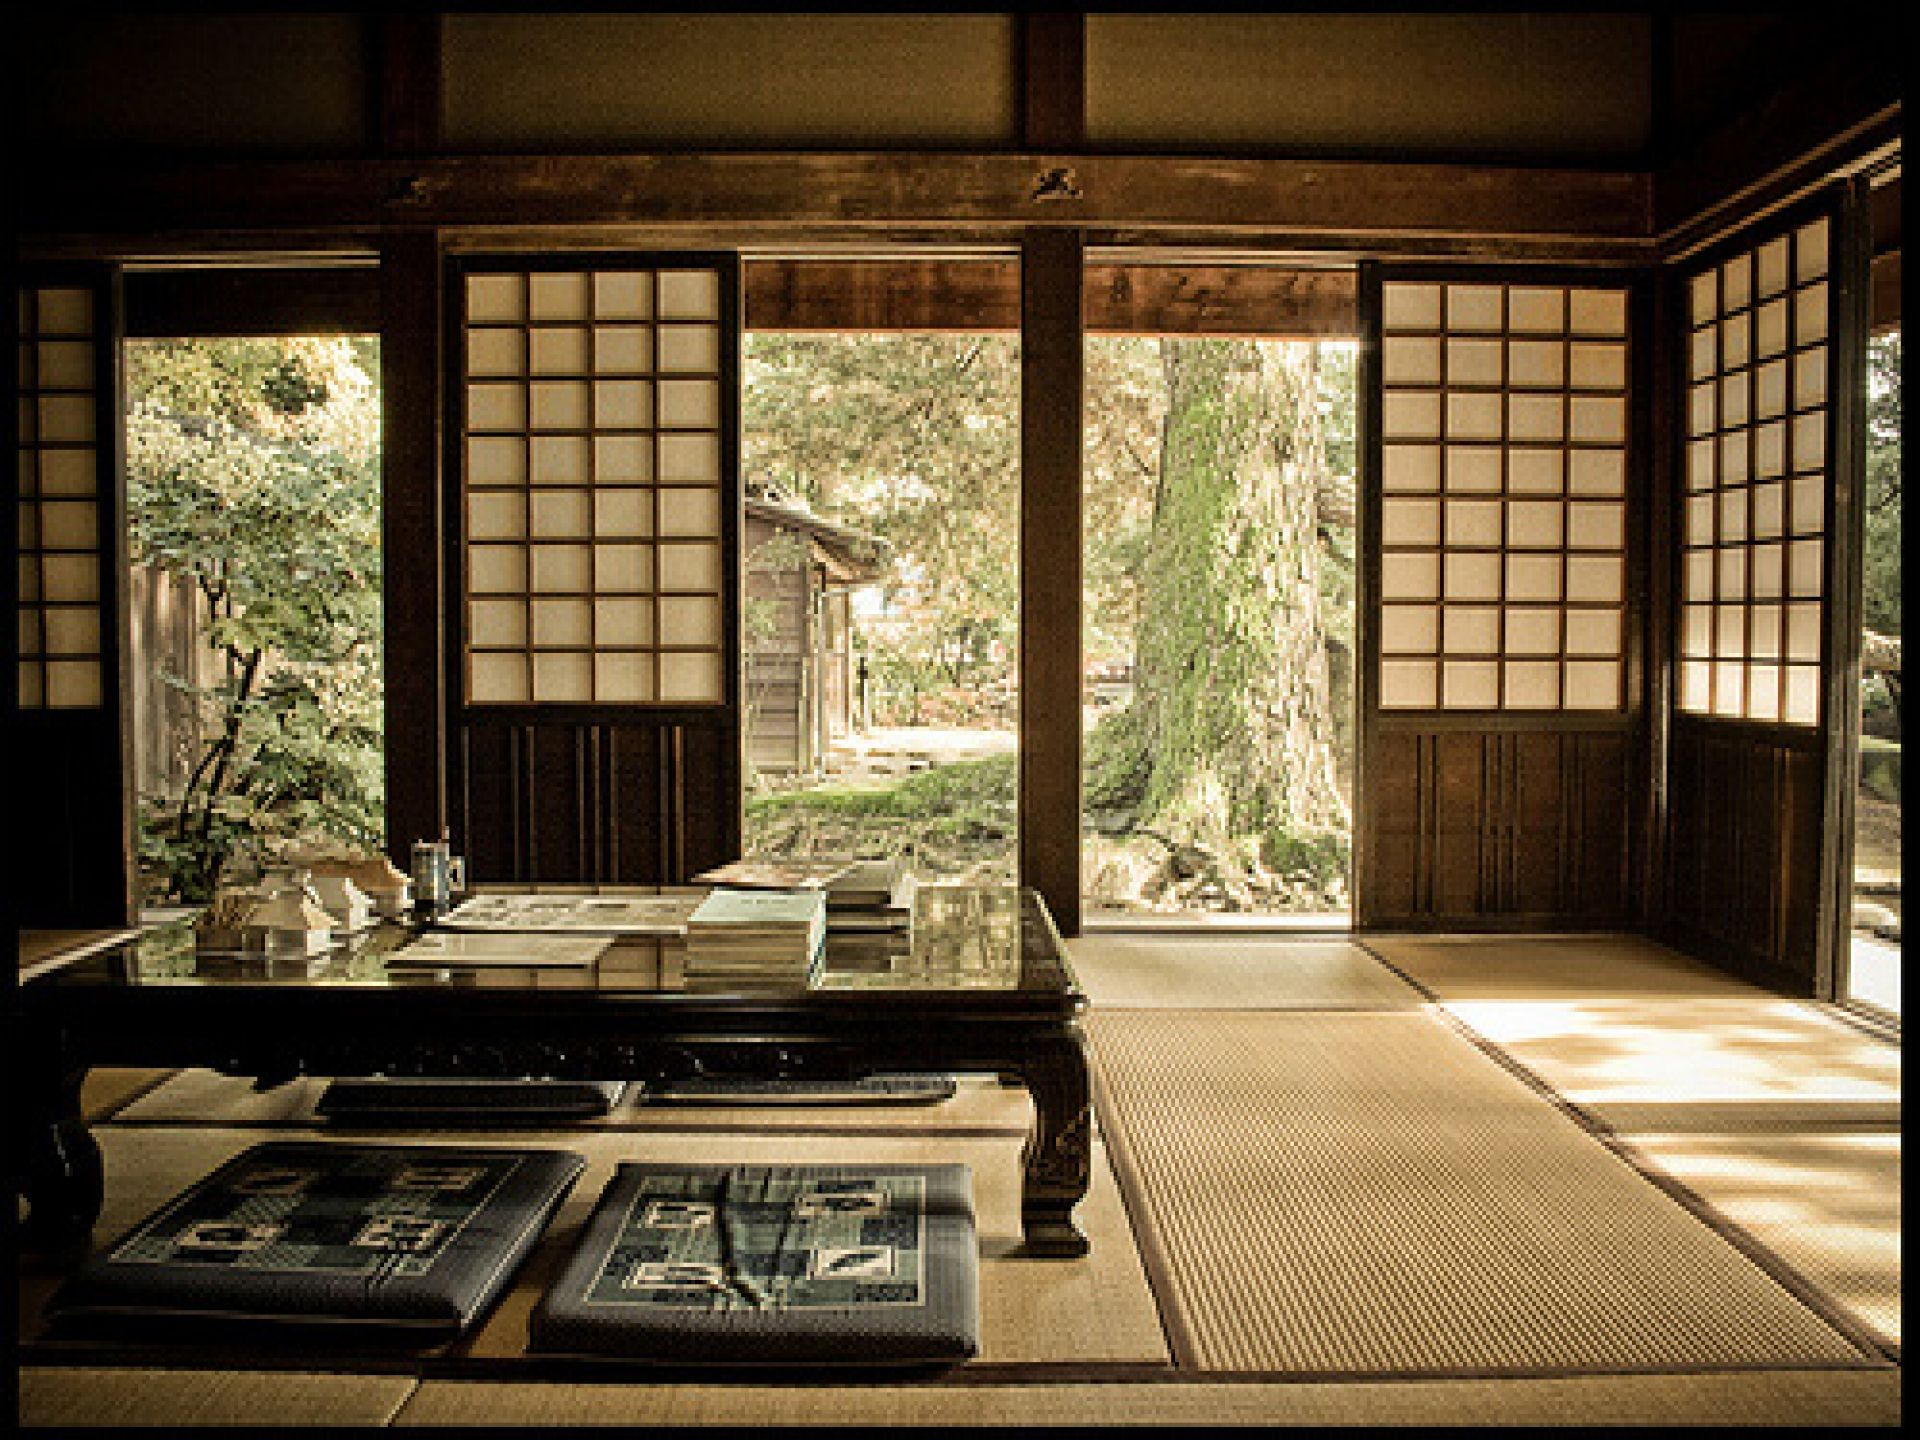 Japanese House Interior Traditional Japanese House Japanese Home Design Japanese Living Room Decor